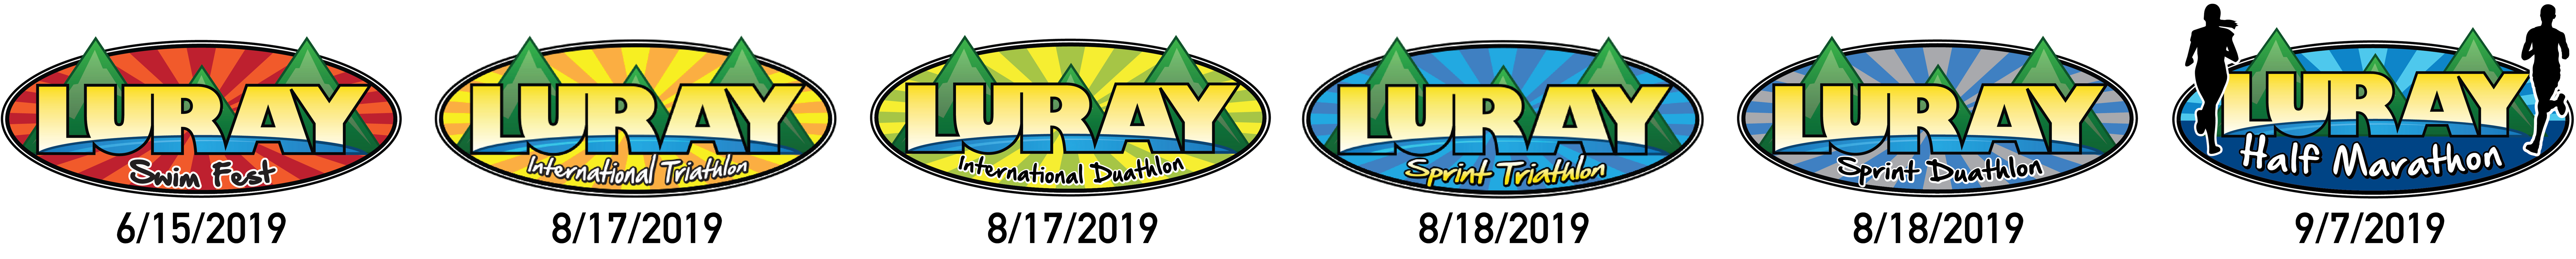 Luray International and Sprint Triathlons in Luray, VA Logo